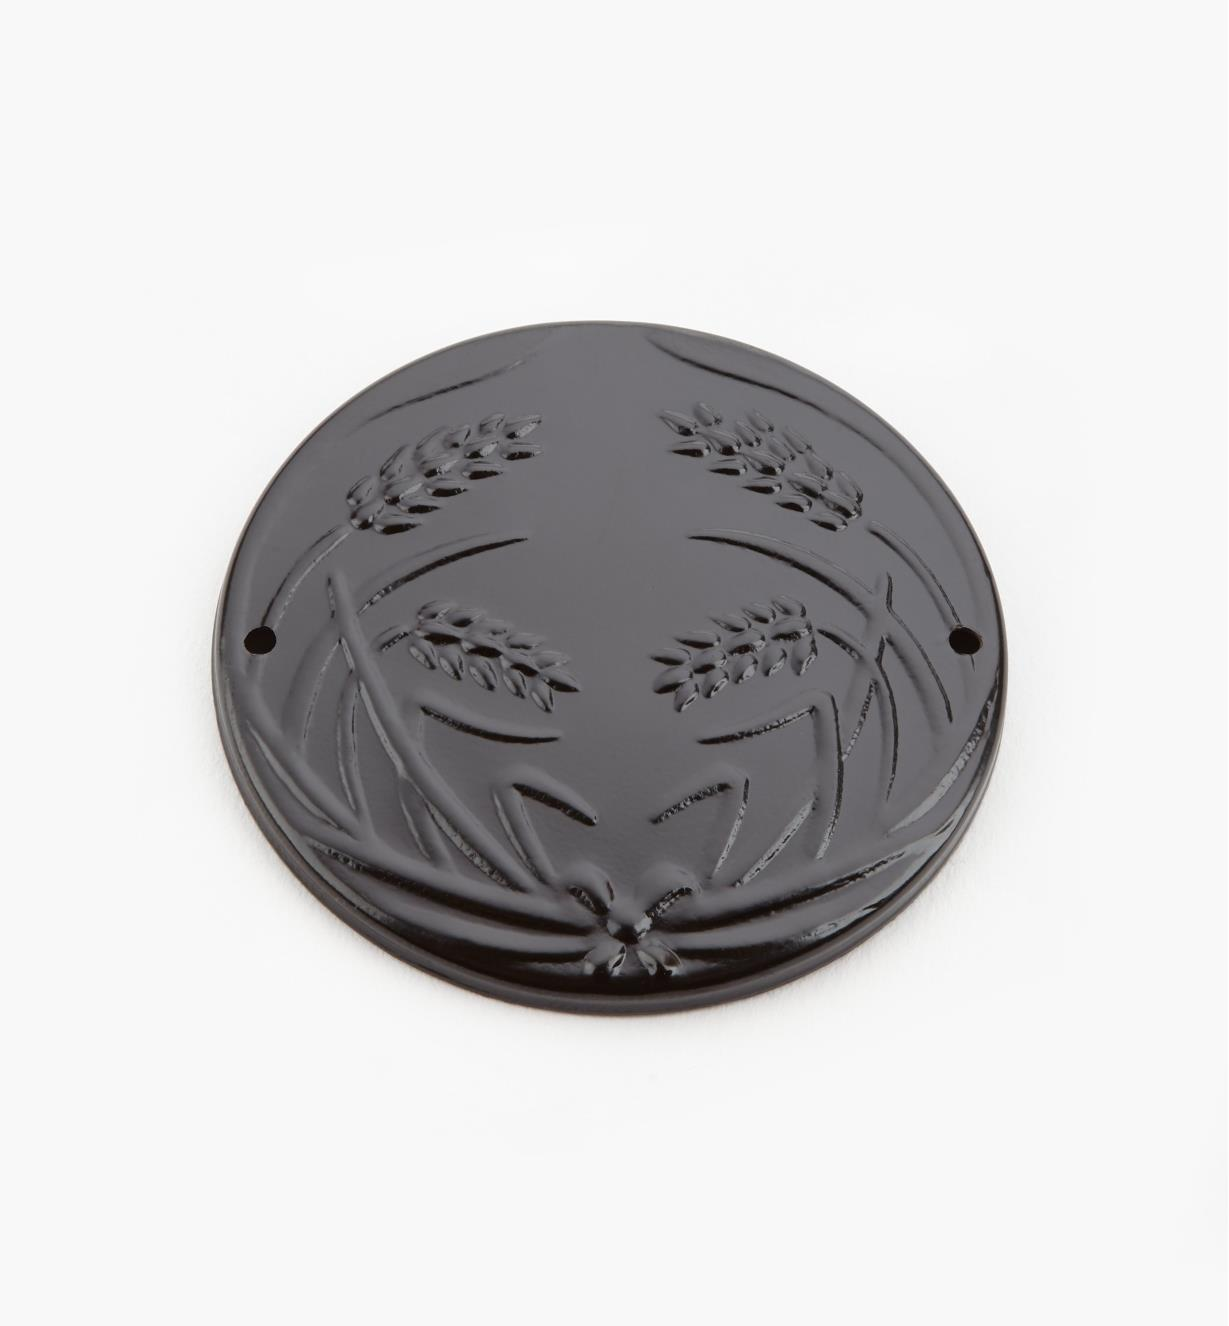 00D5520 - 45mm dia. Harvest Medallion